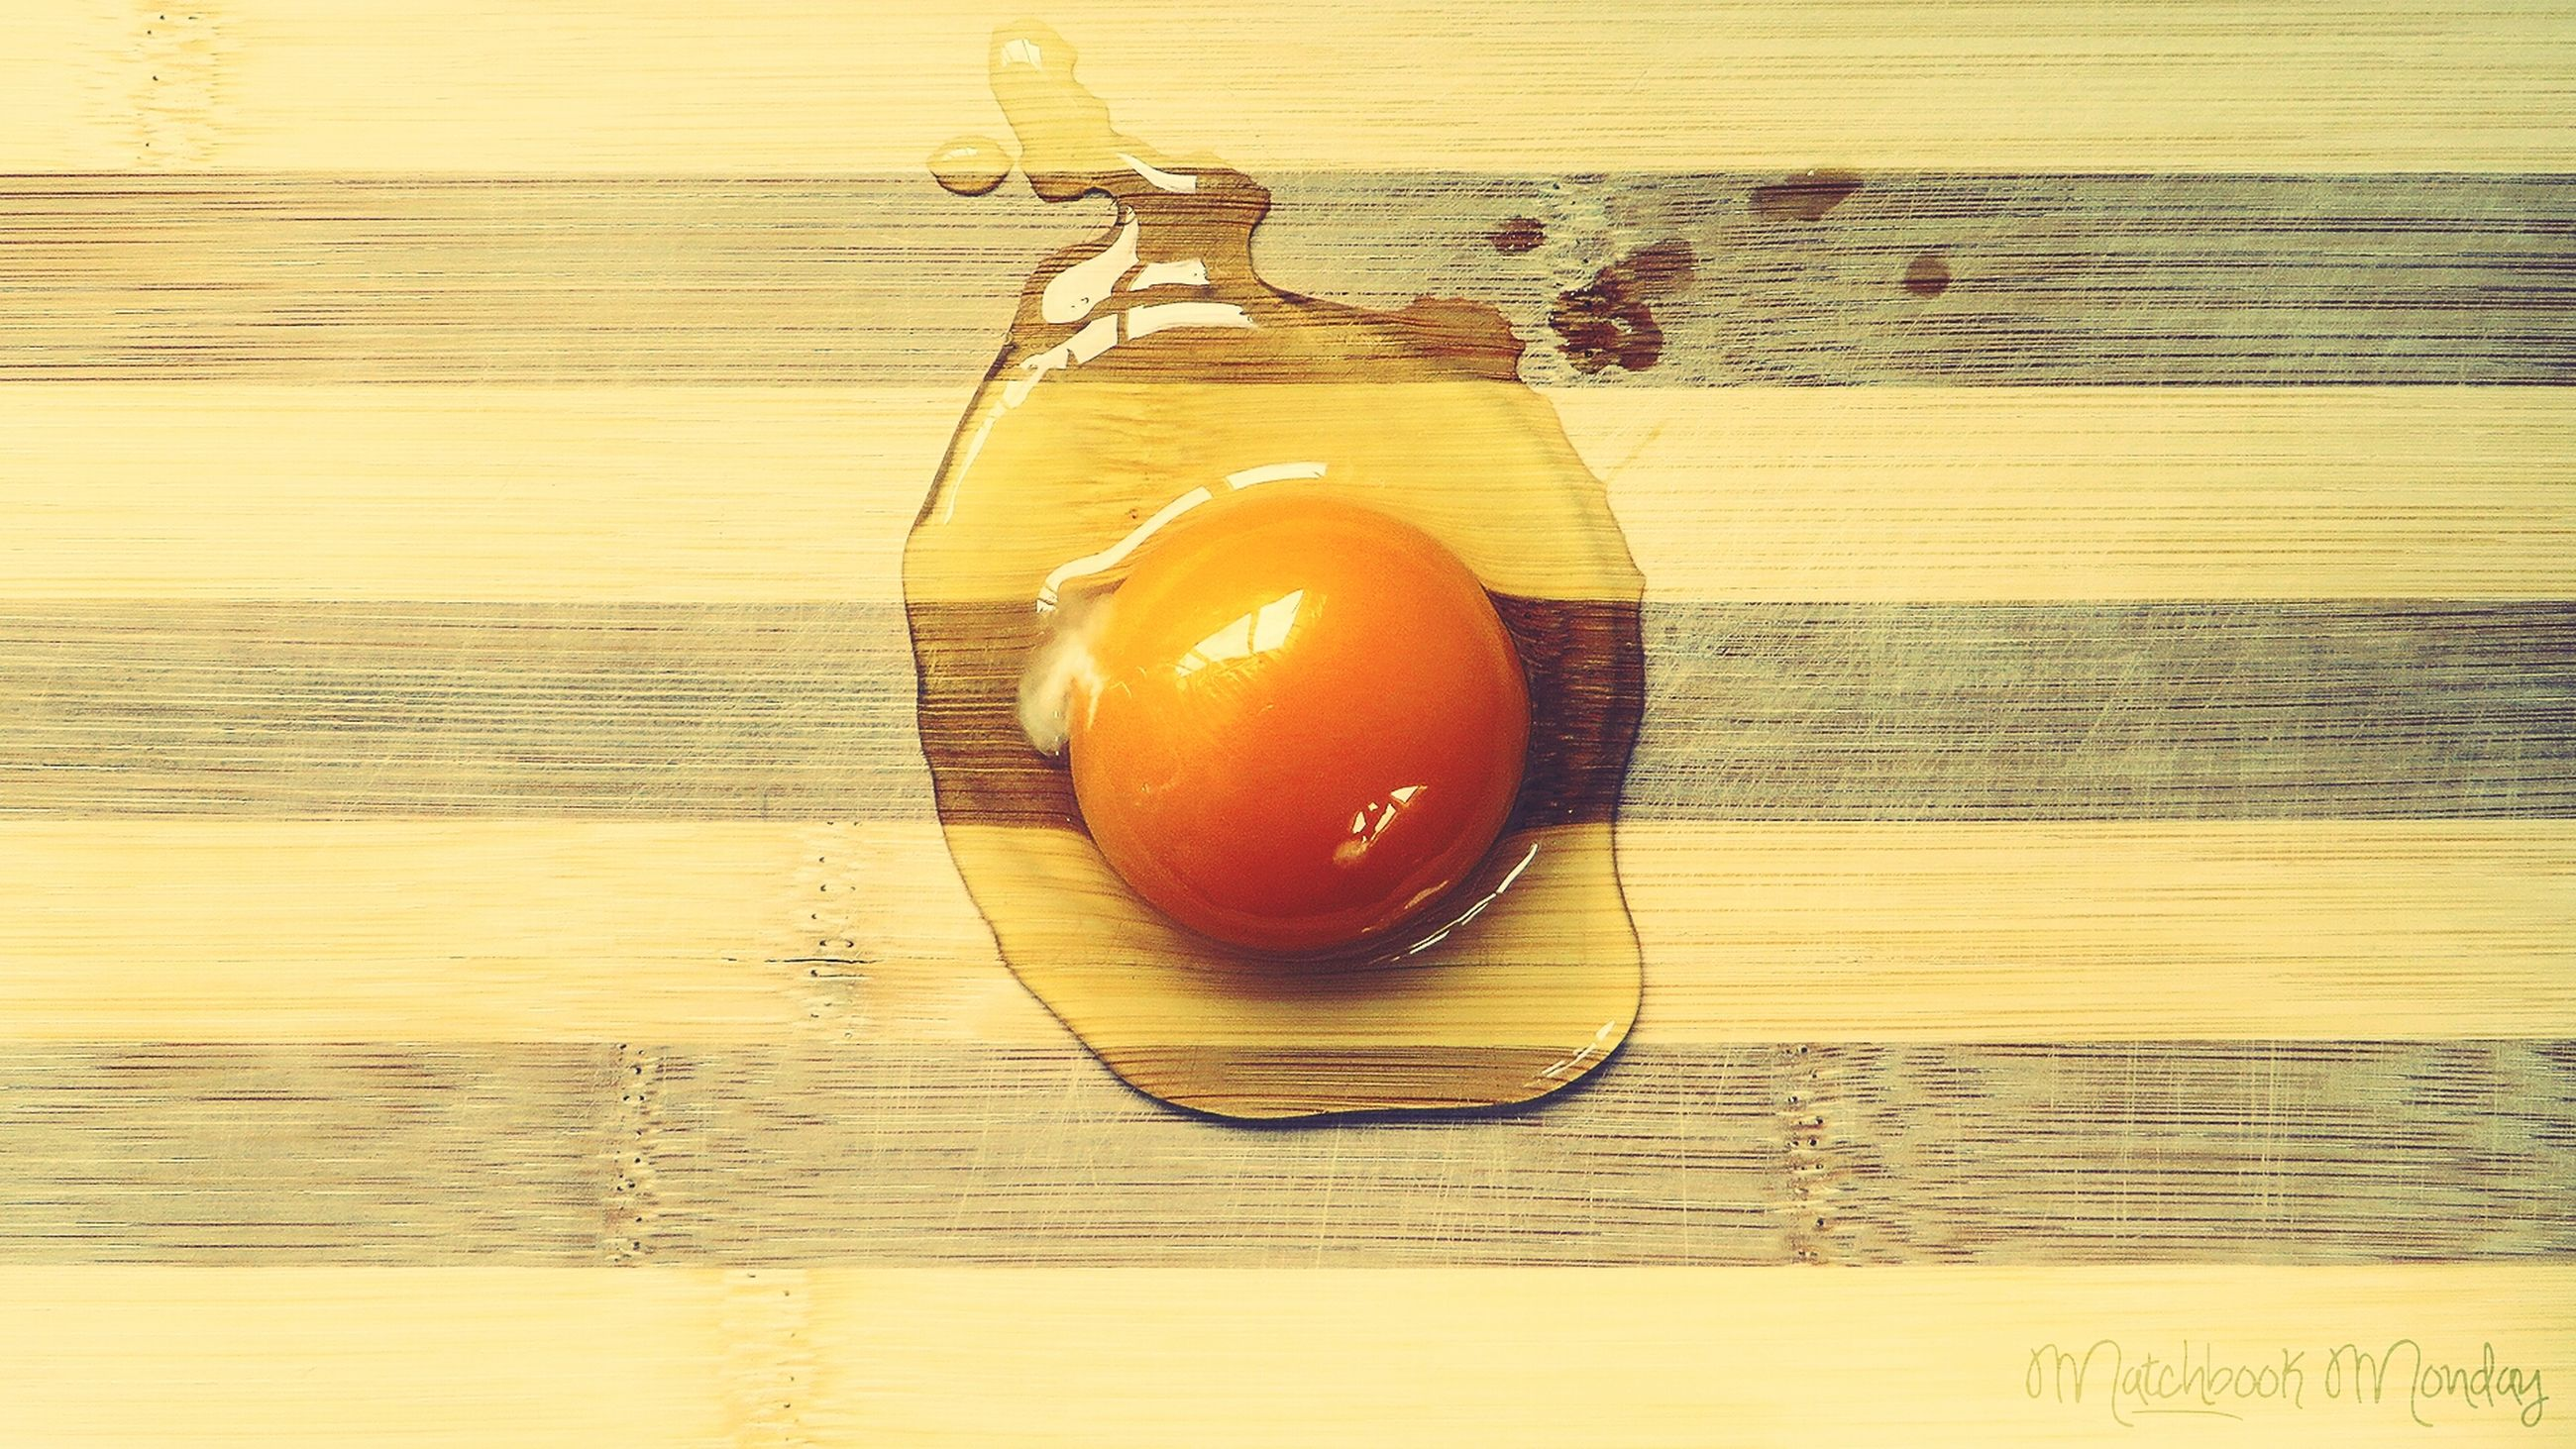 table, food and drink, wood - material, still life, close-up, indoors, freshness, wooden, drink, healthy eating, no people, yellow, refreshment, orange color, fruit, high angle view, food, wood, sunlight, day